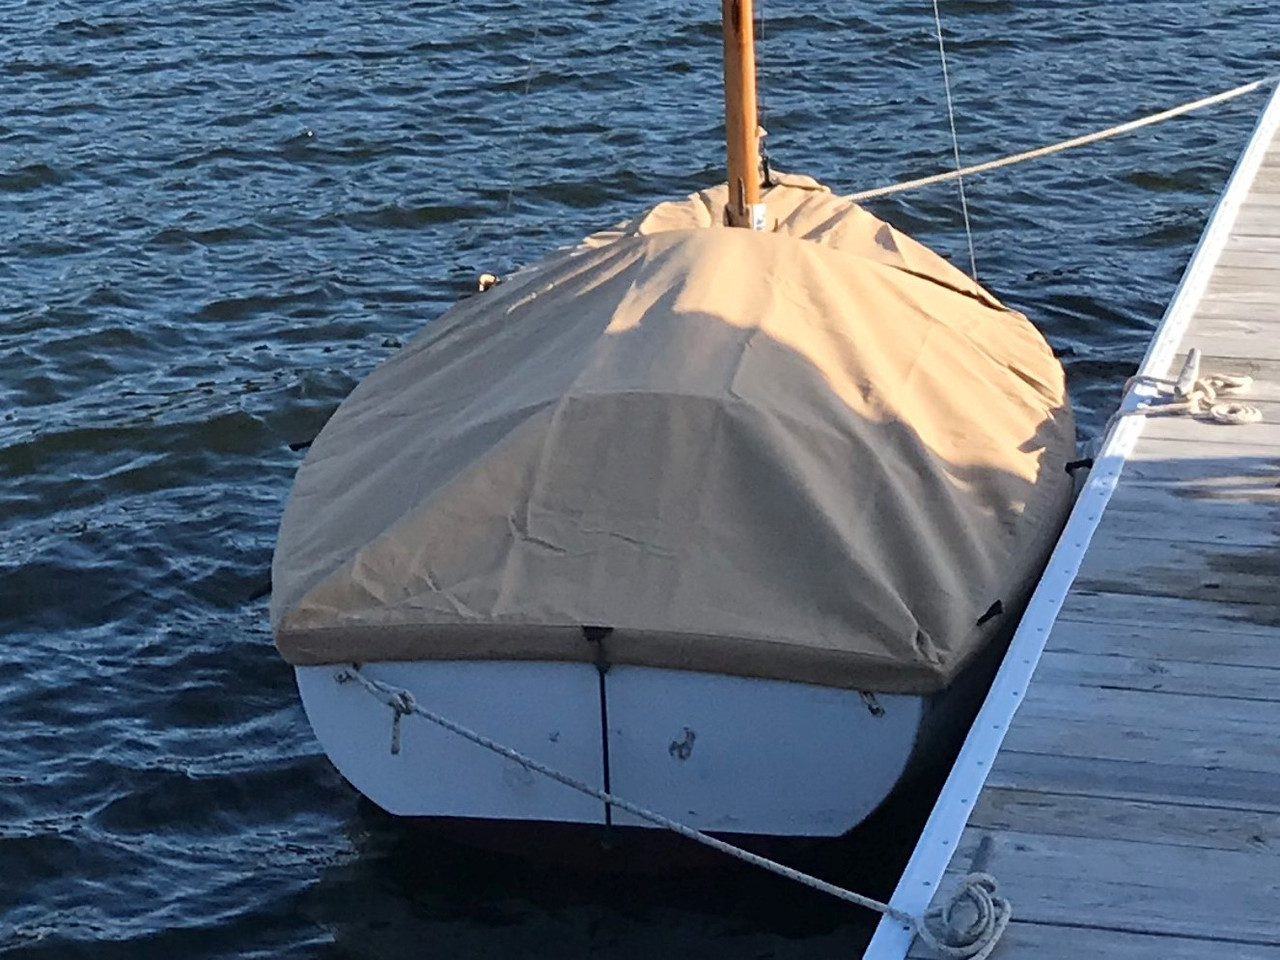 Use SLO Sail and Canvas' Mooring Cover to protect your boat while in storage, or when in the water.